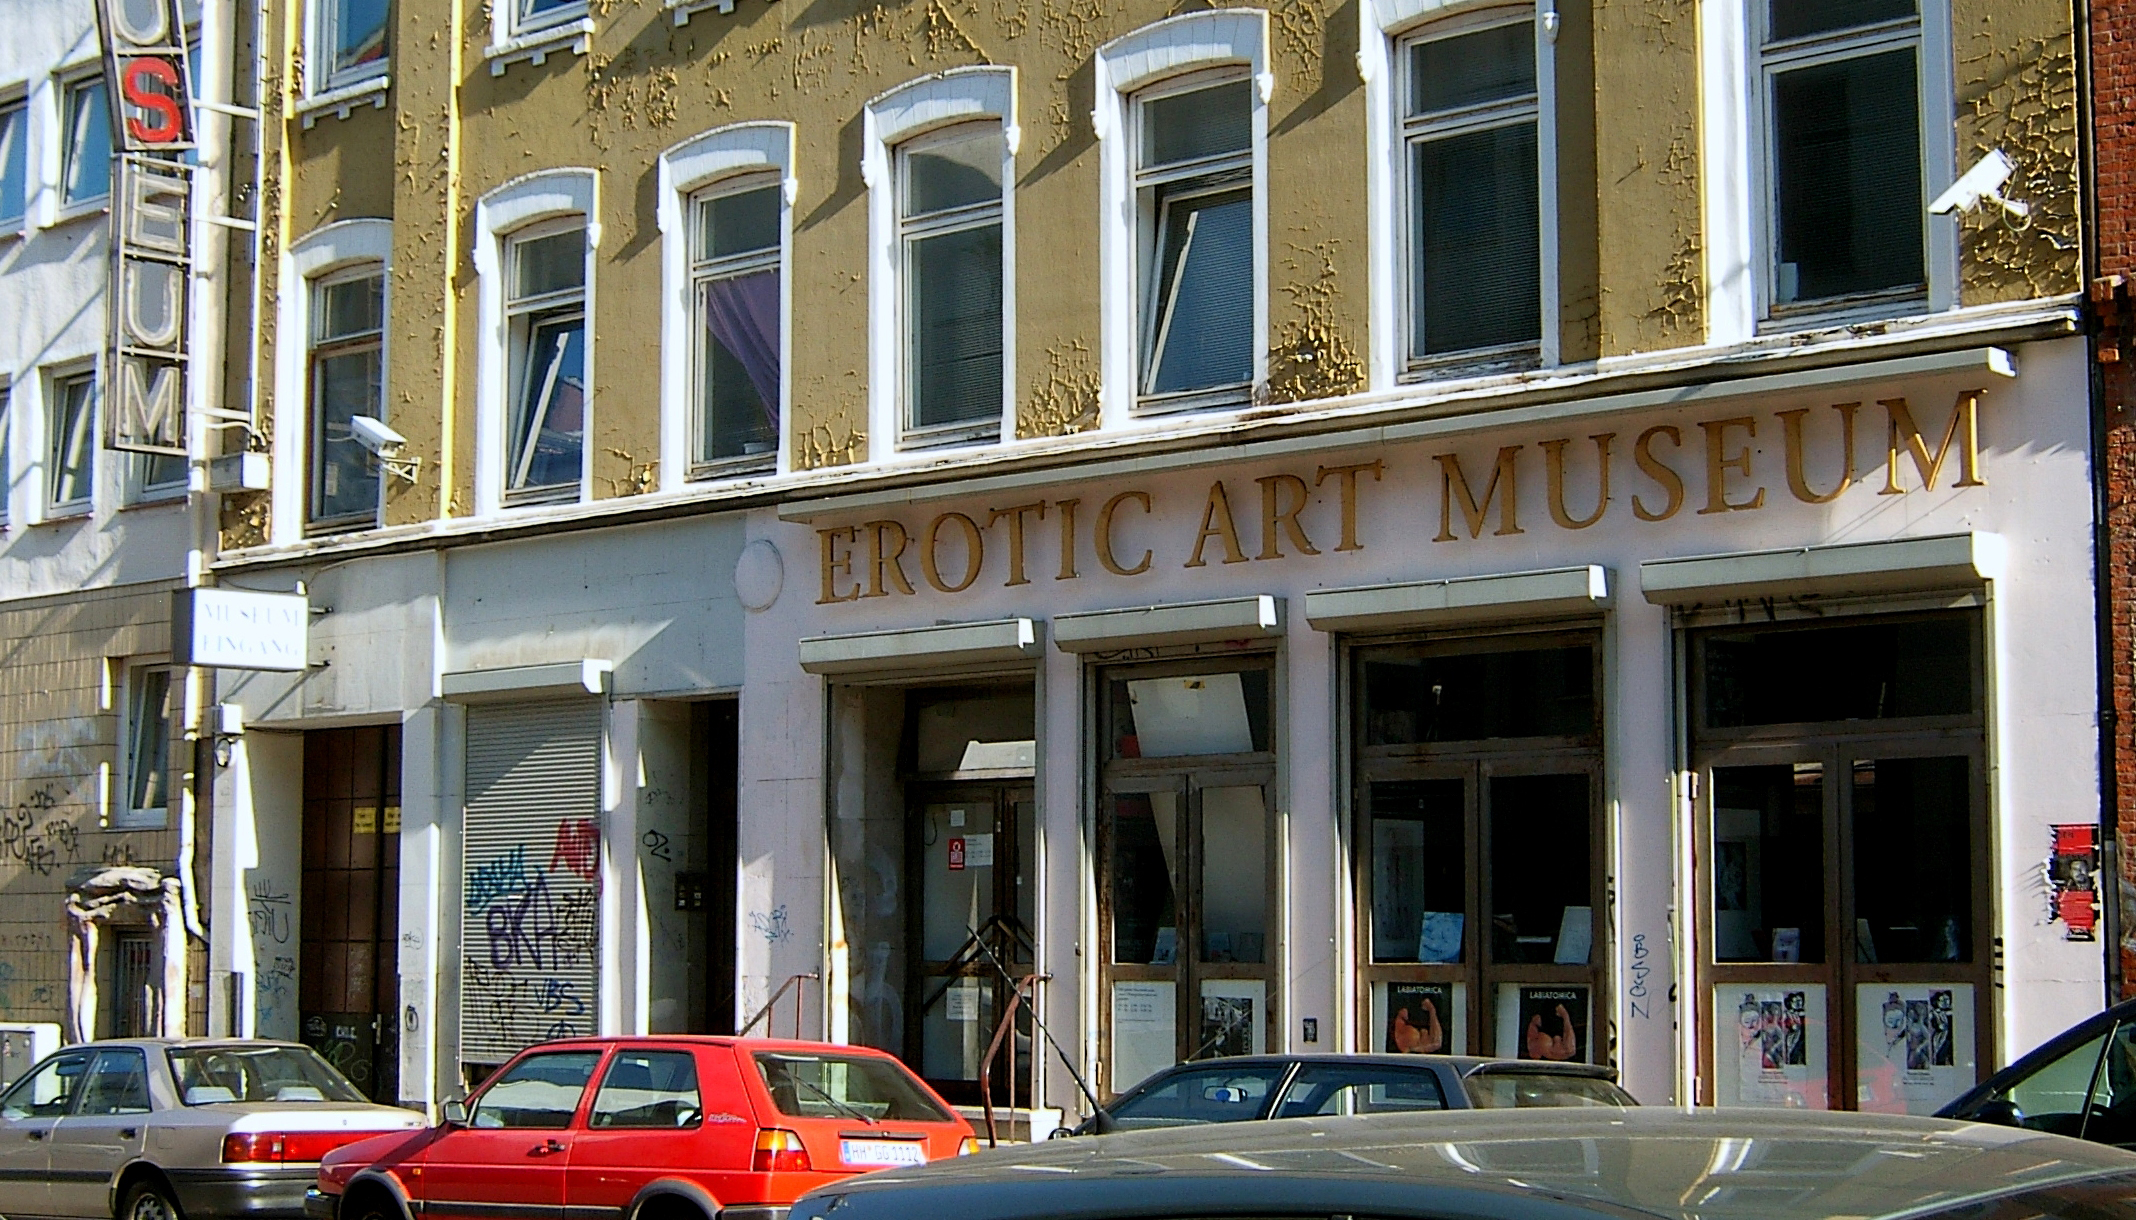 "Erotic Art Museum ""Hamburg Erotic Art Museum"" von"